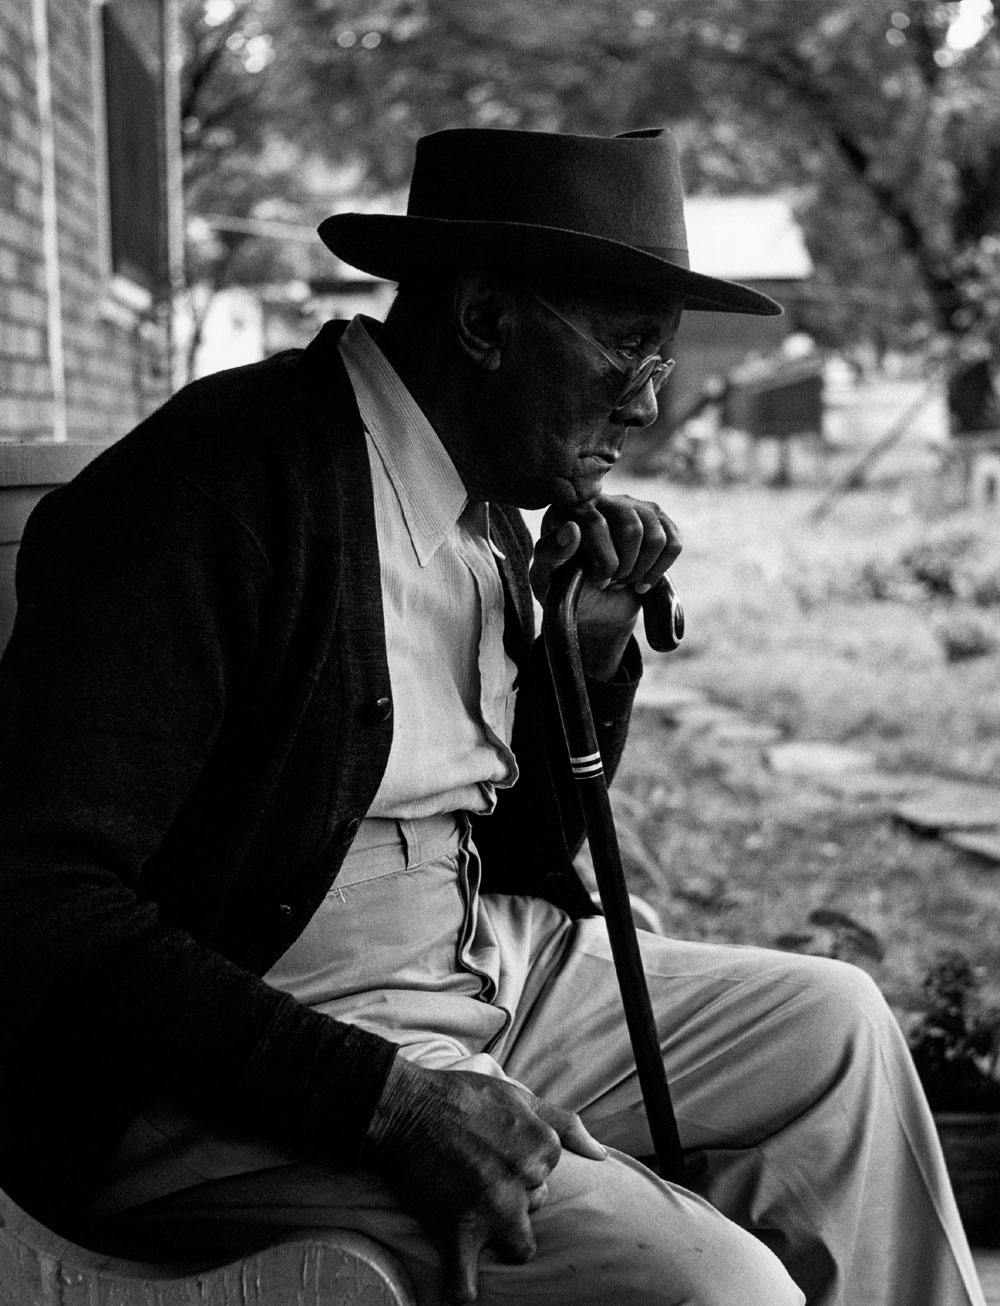 Gordon Parks Uncle James Fort Scott Kansas 1950